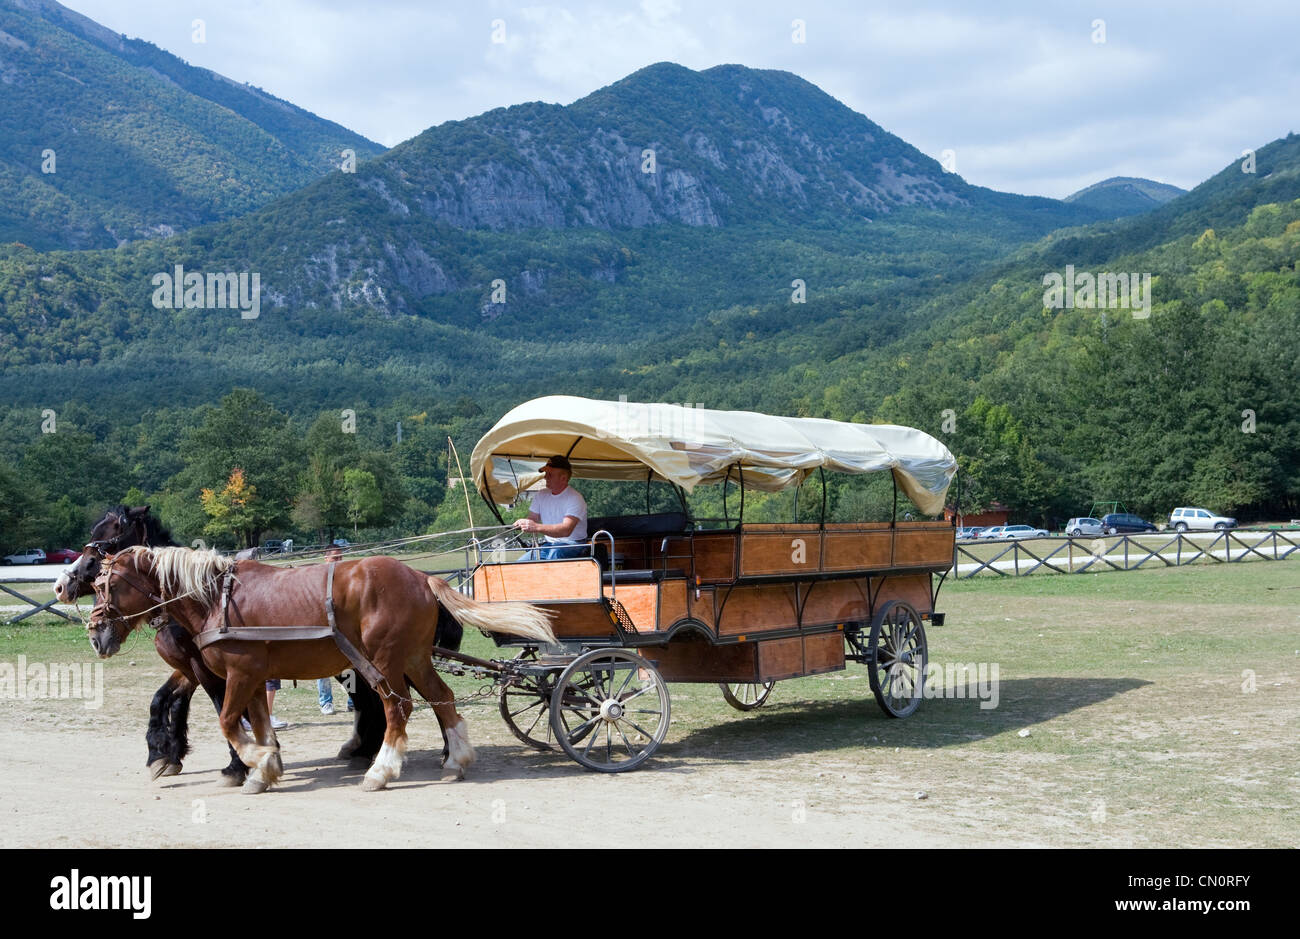 Italy, a tourist carriage in Abruzzo's National Park - Stock Image